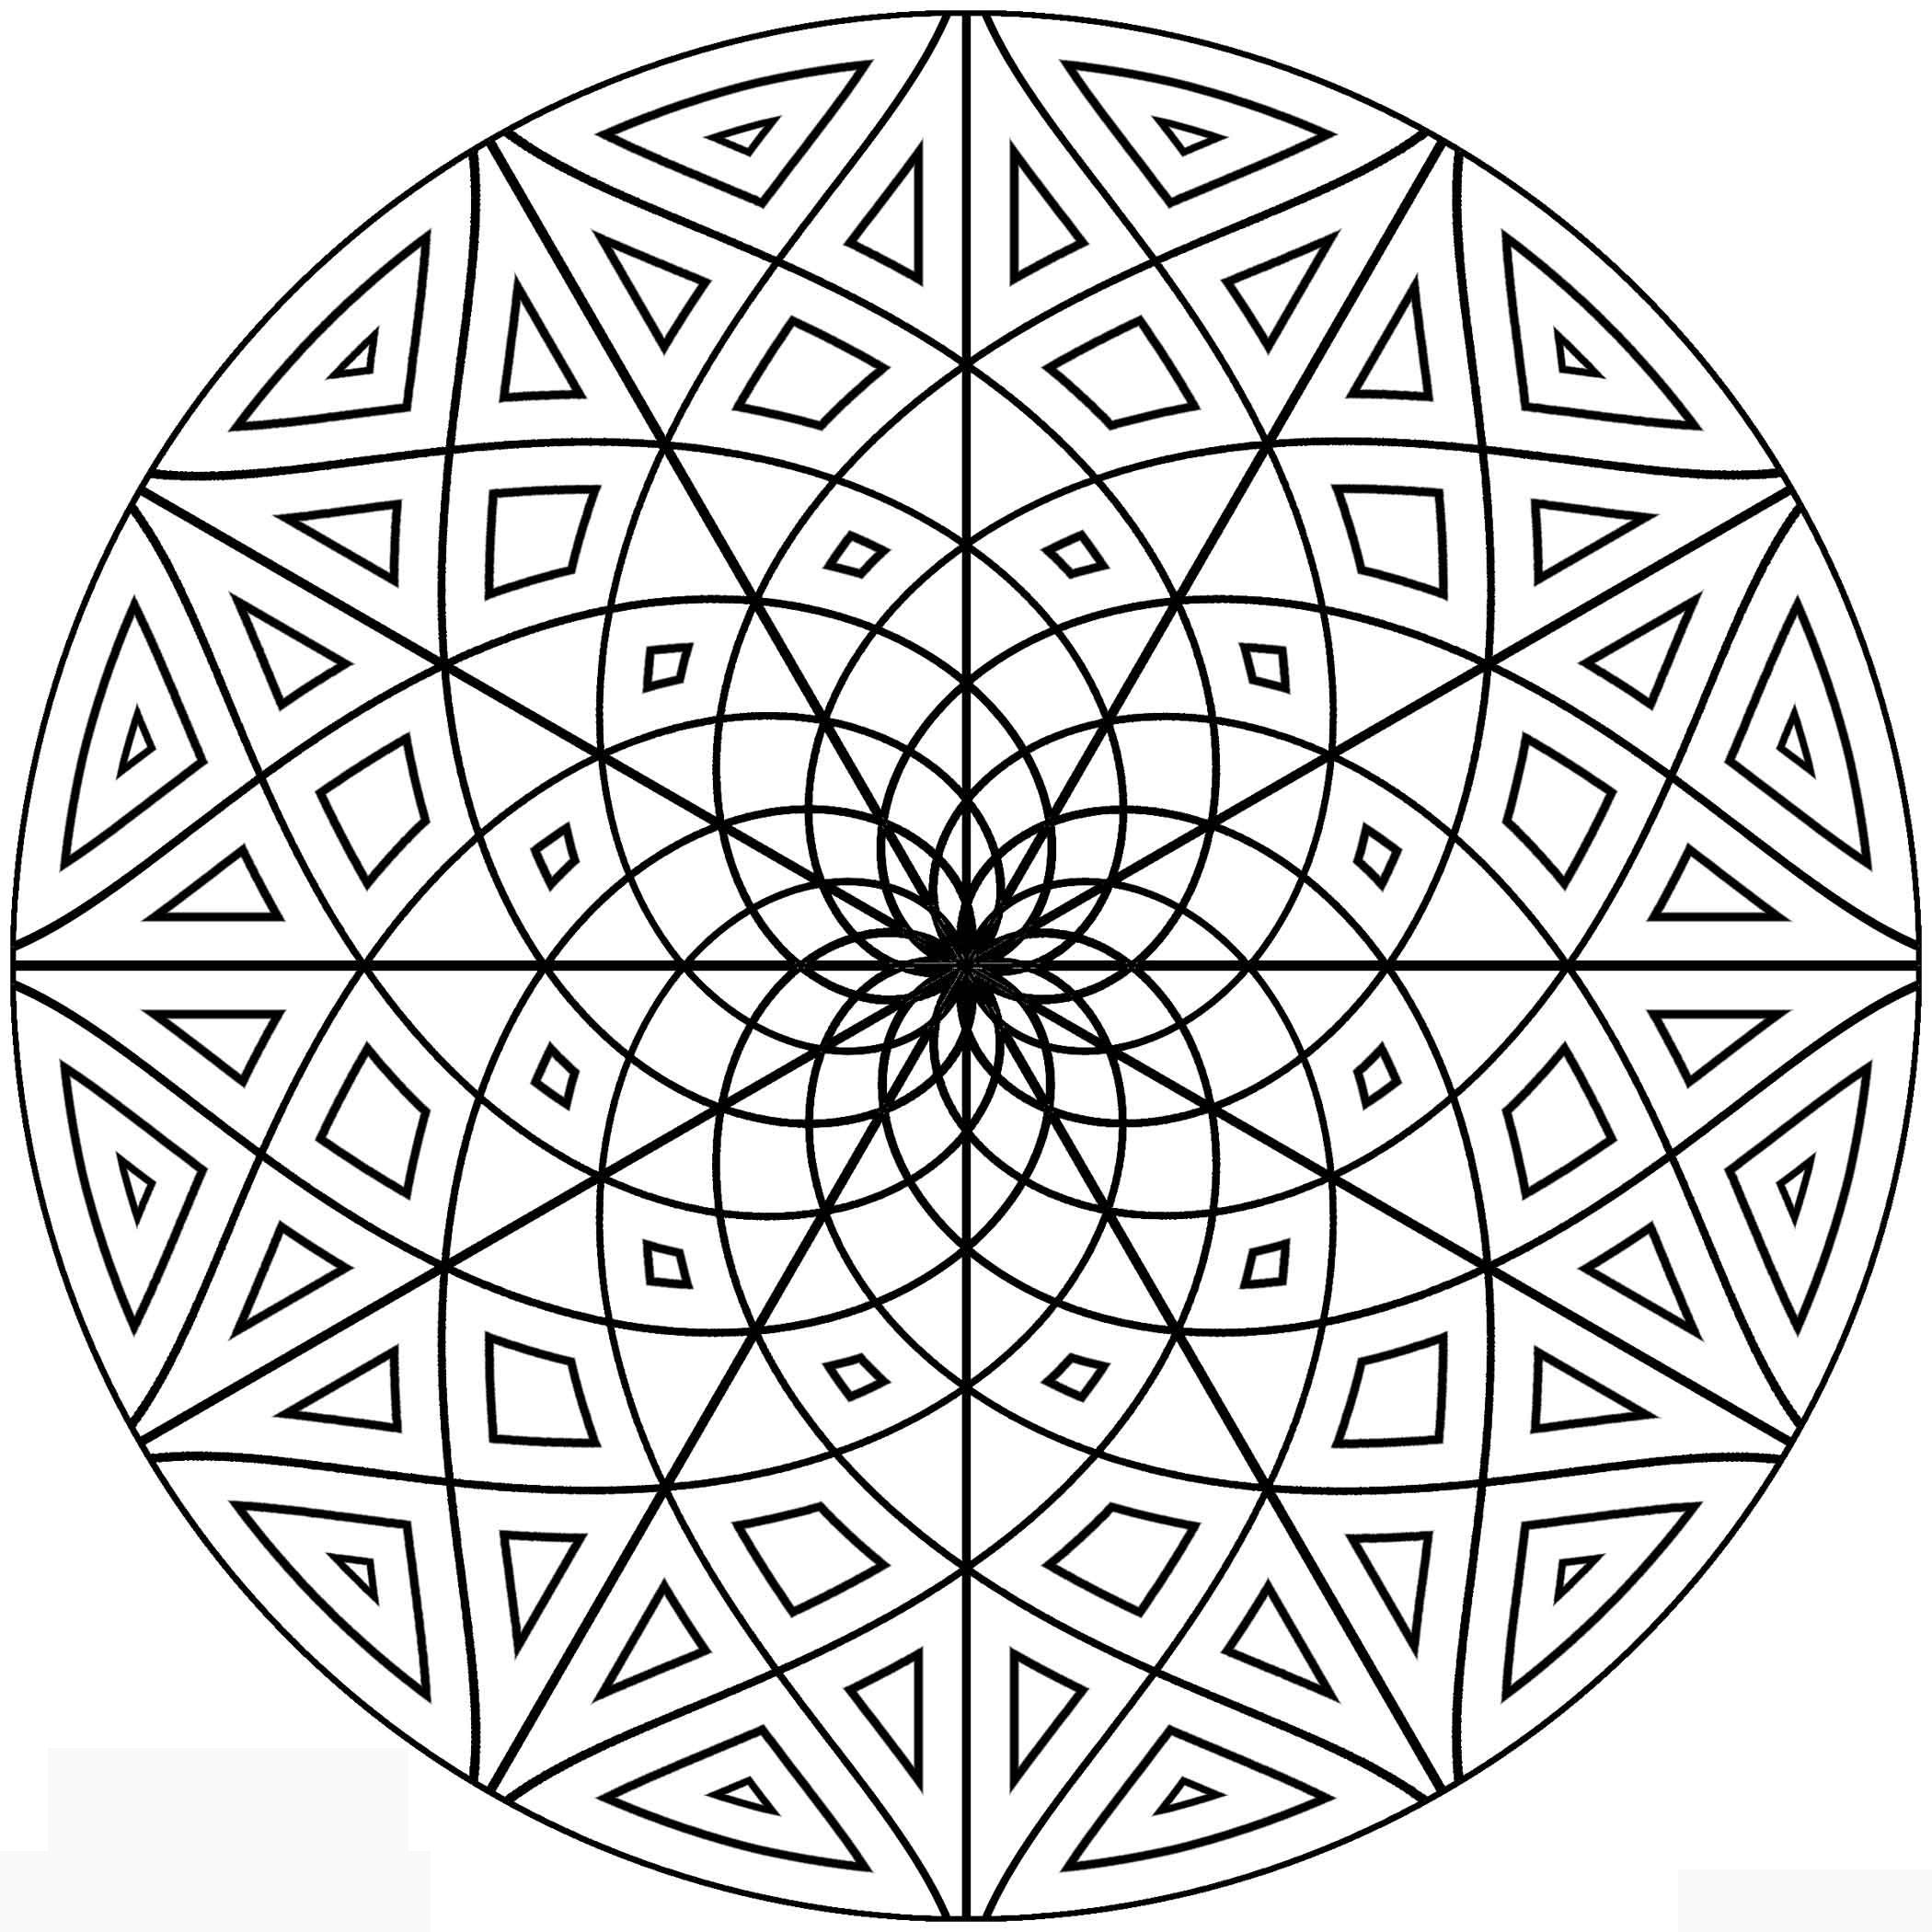 2100x2100 Astonishing Printable Geometric Coloring Pages For Kids Image